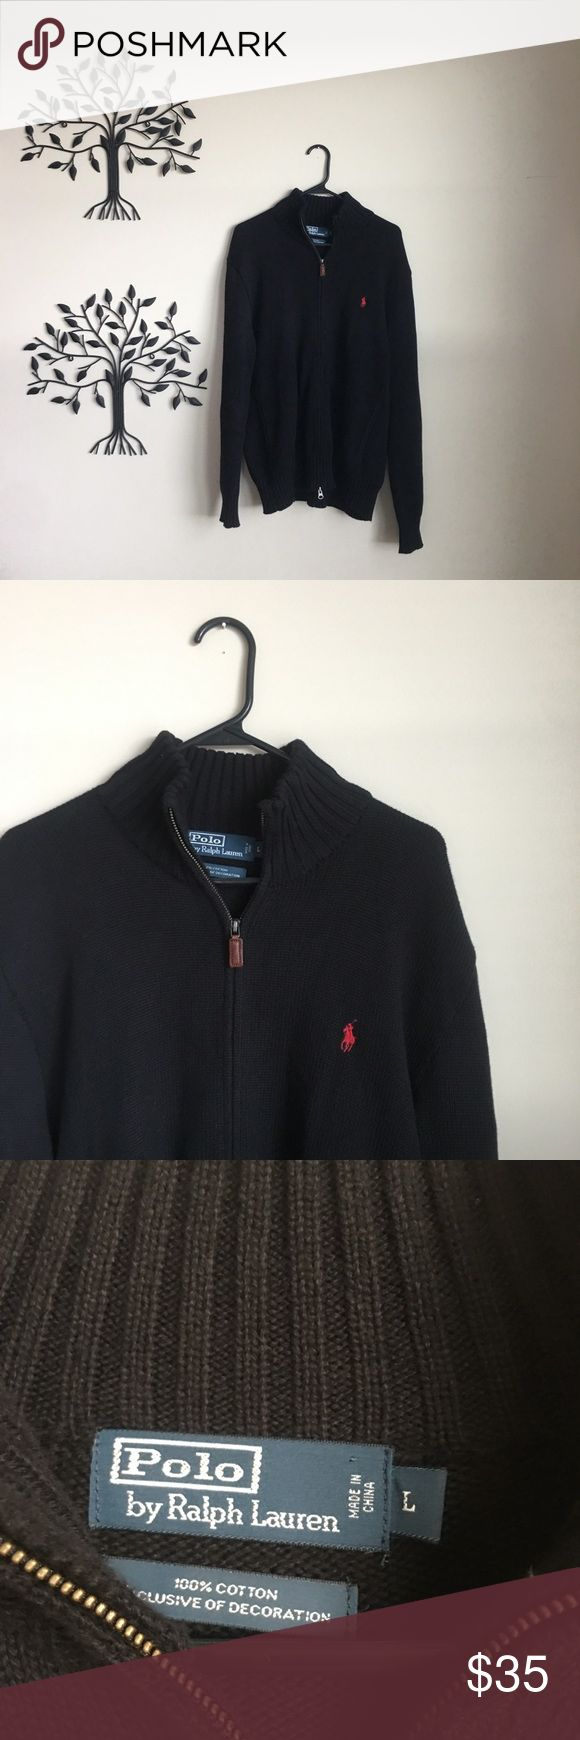 Ralph Lauren Premium Full Zip Sweater Extremely High Quality Exclusive Of Decoration Design Polo By Ralph Lauren Full Zip Sweater  Has two pull tab zippers it is a full Zip Up   Color is Black With Red Horse Logo   Size is Men's Large Polo by Ralph Lauren Sweaters Zip Up